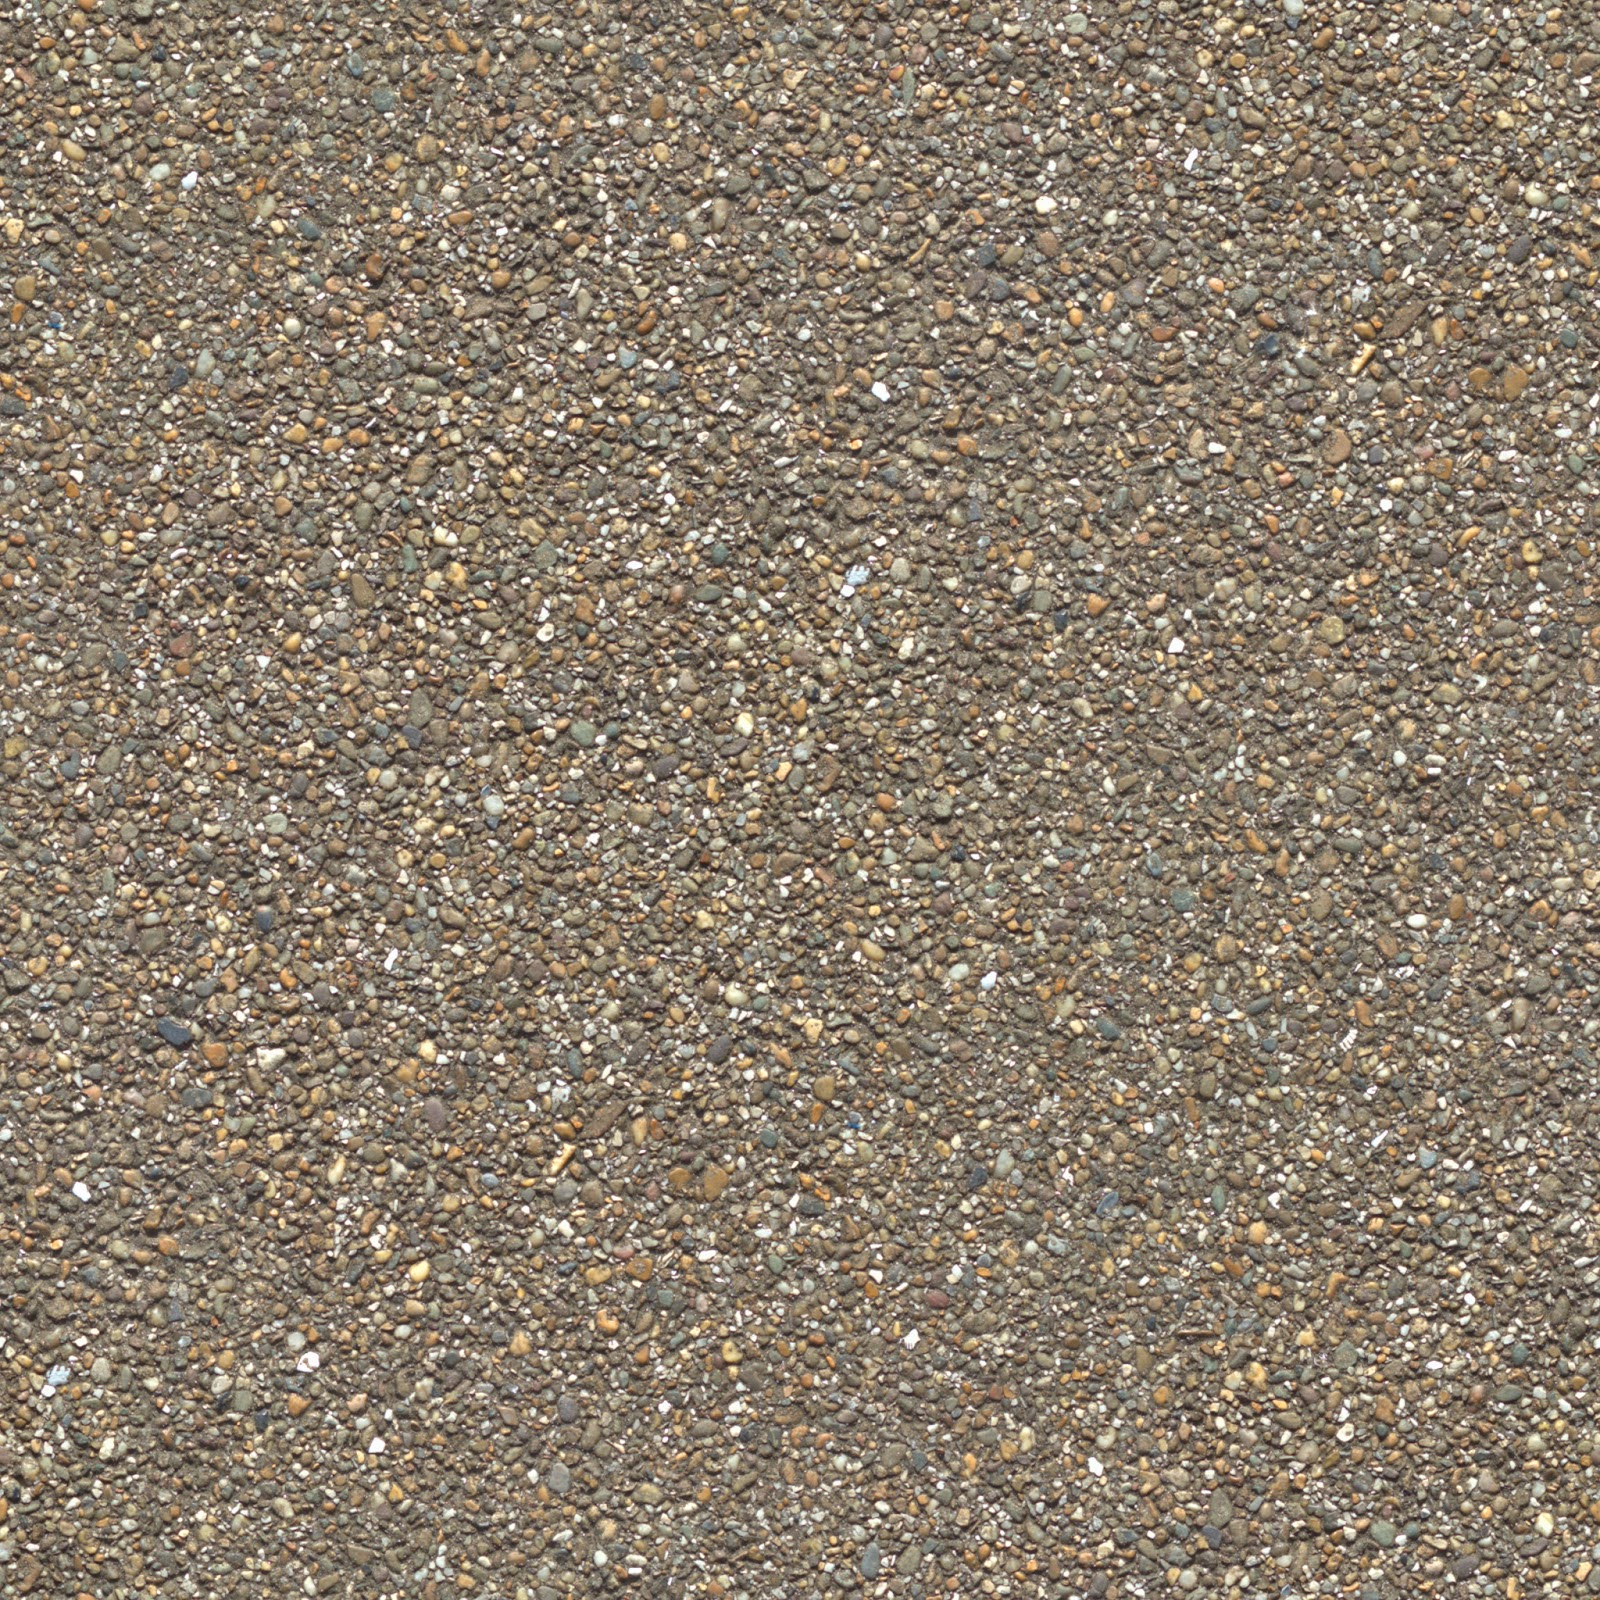 Pebblestone small ground seamless texture 2048x2048